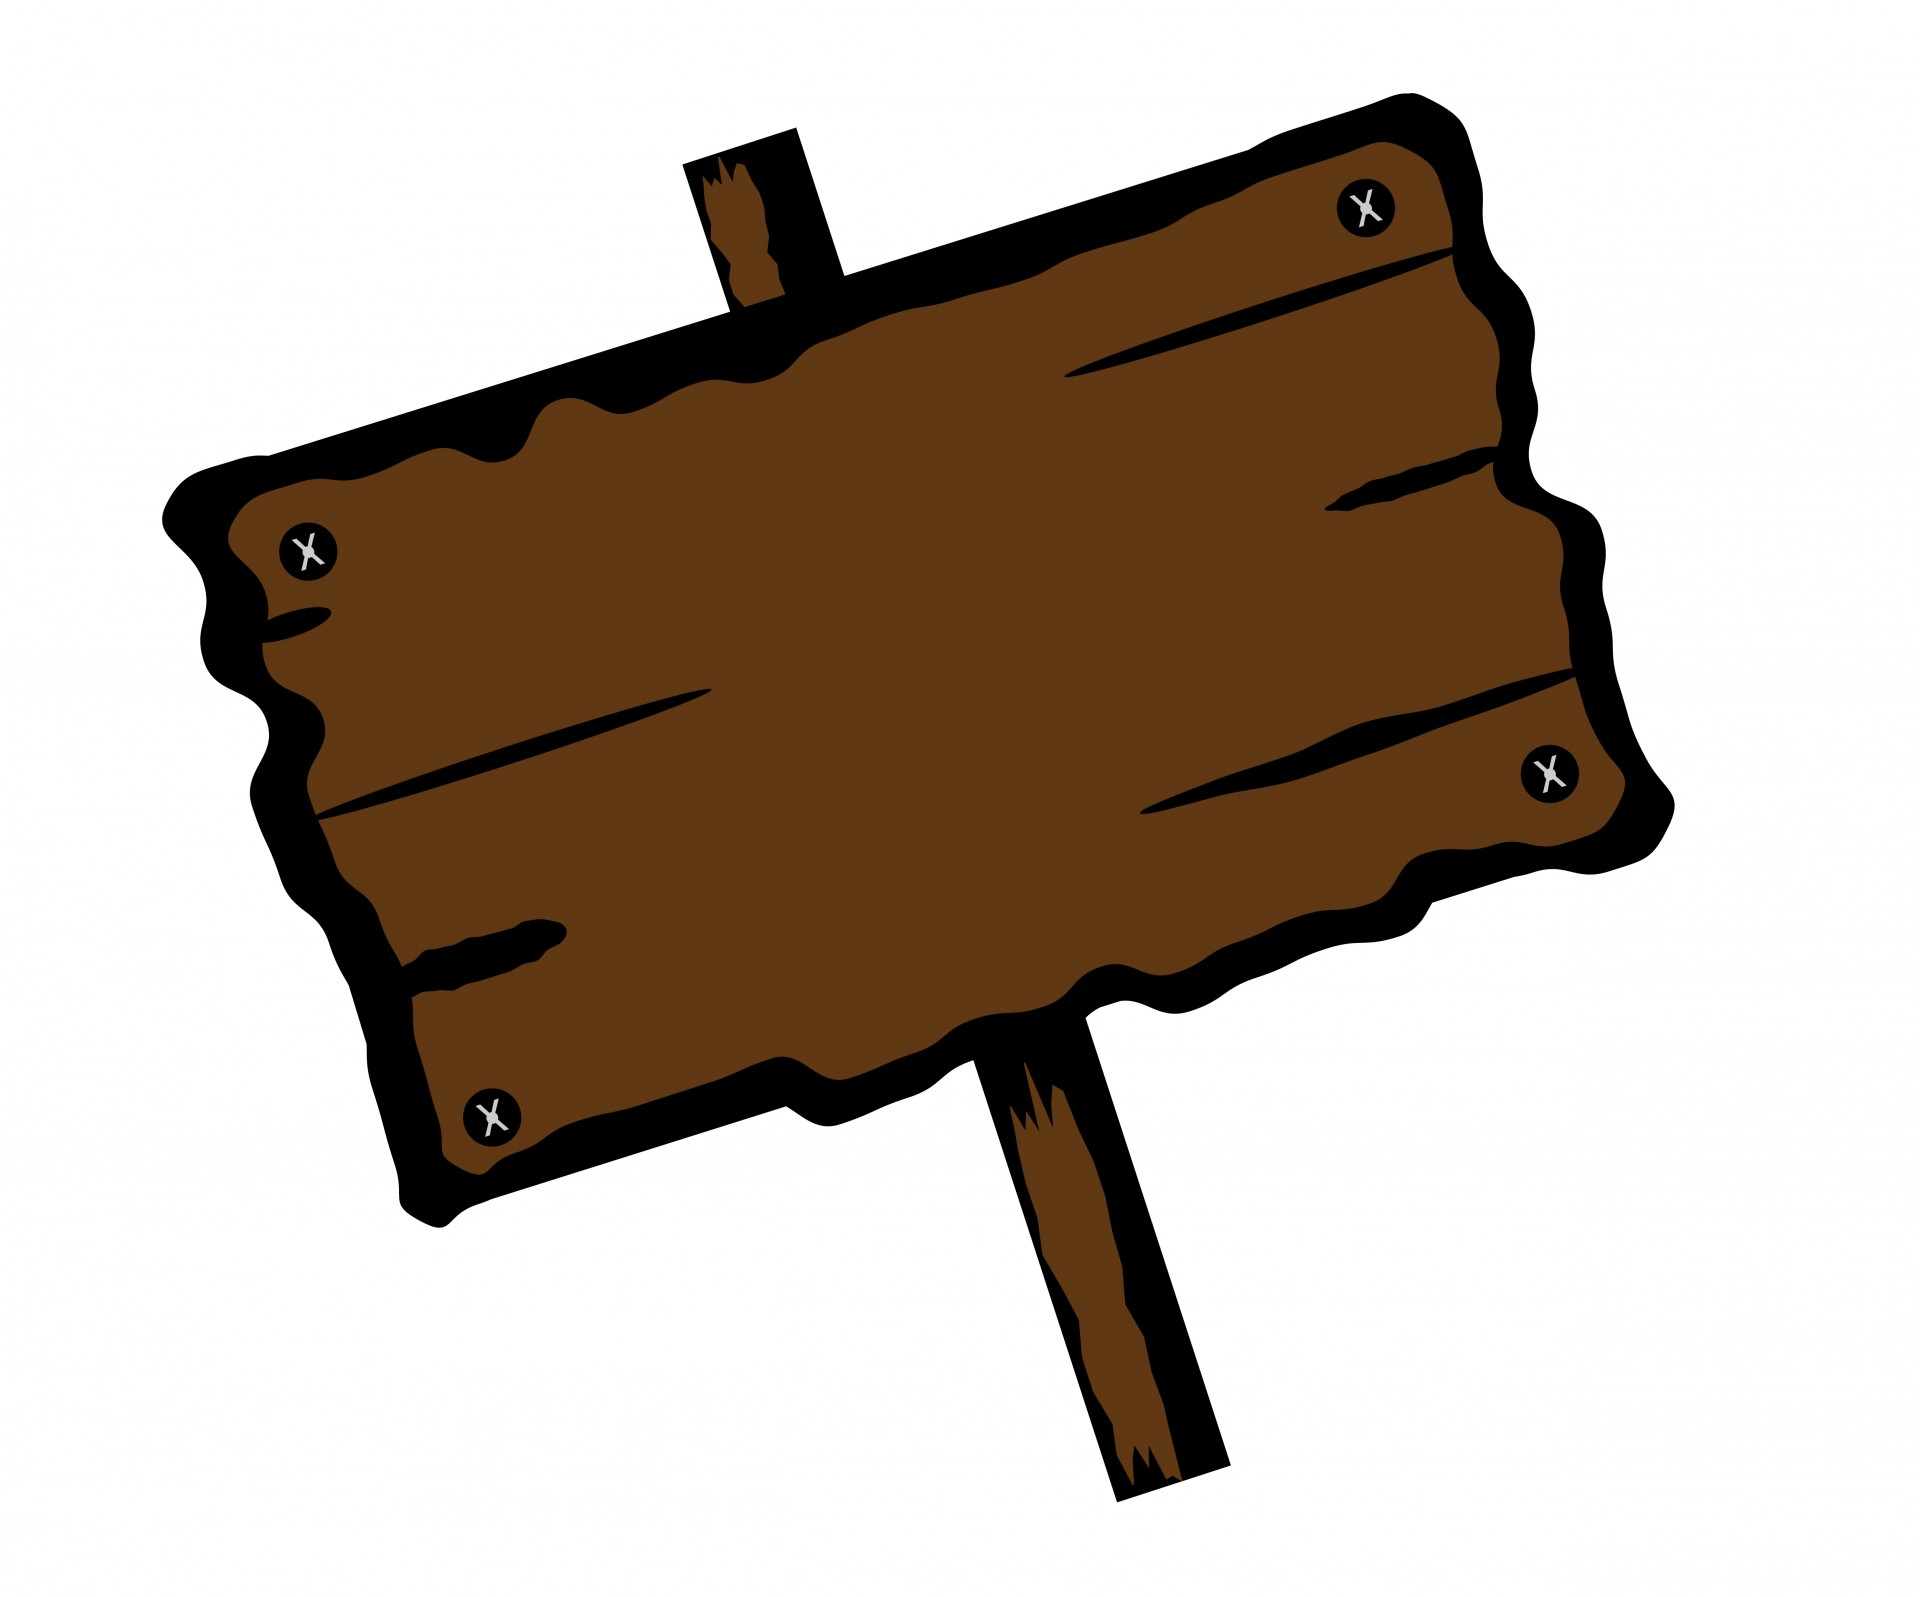 Wooden clipart sign board. Signboard free stock photo